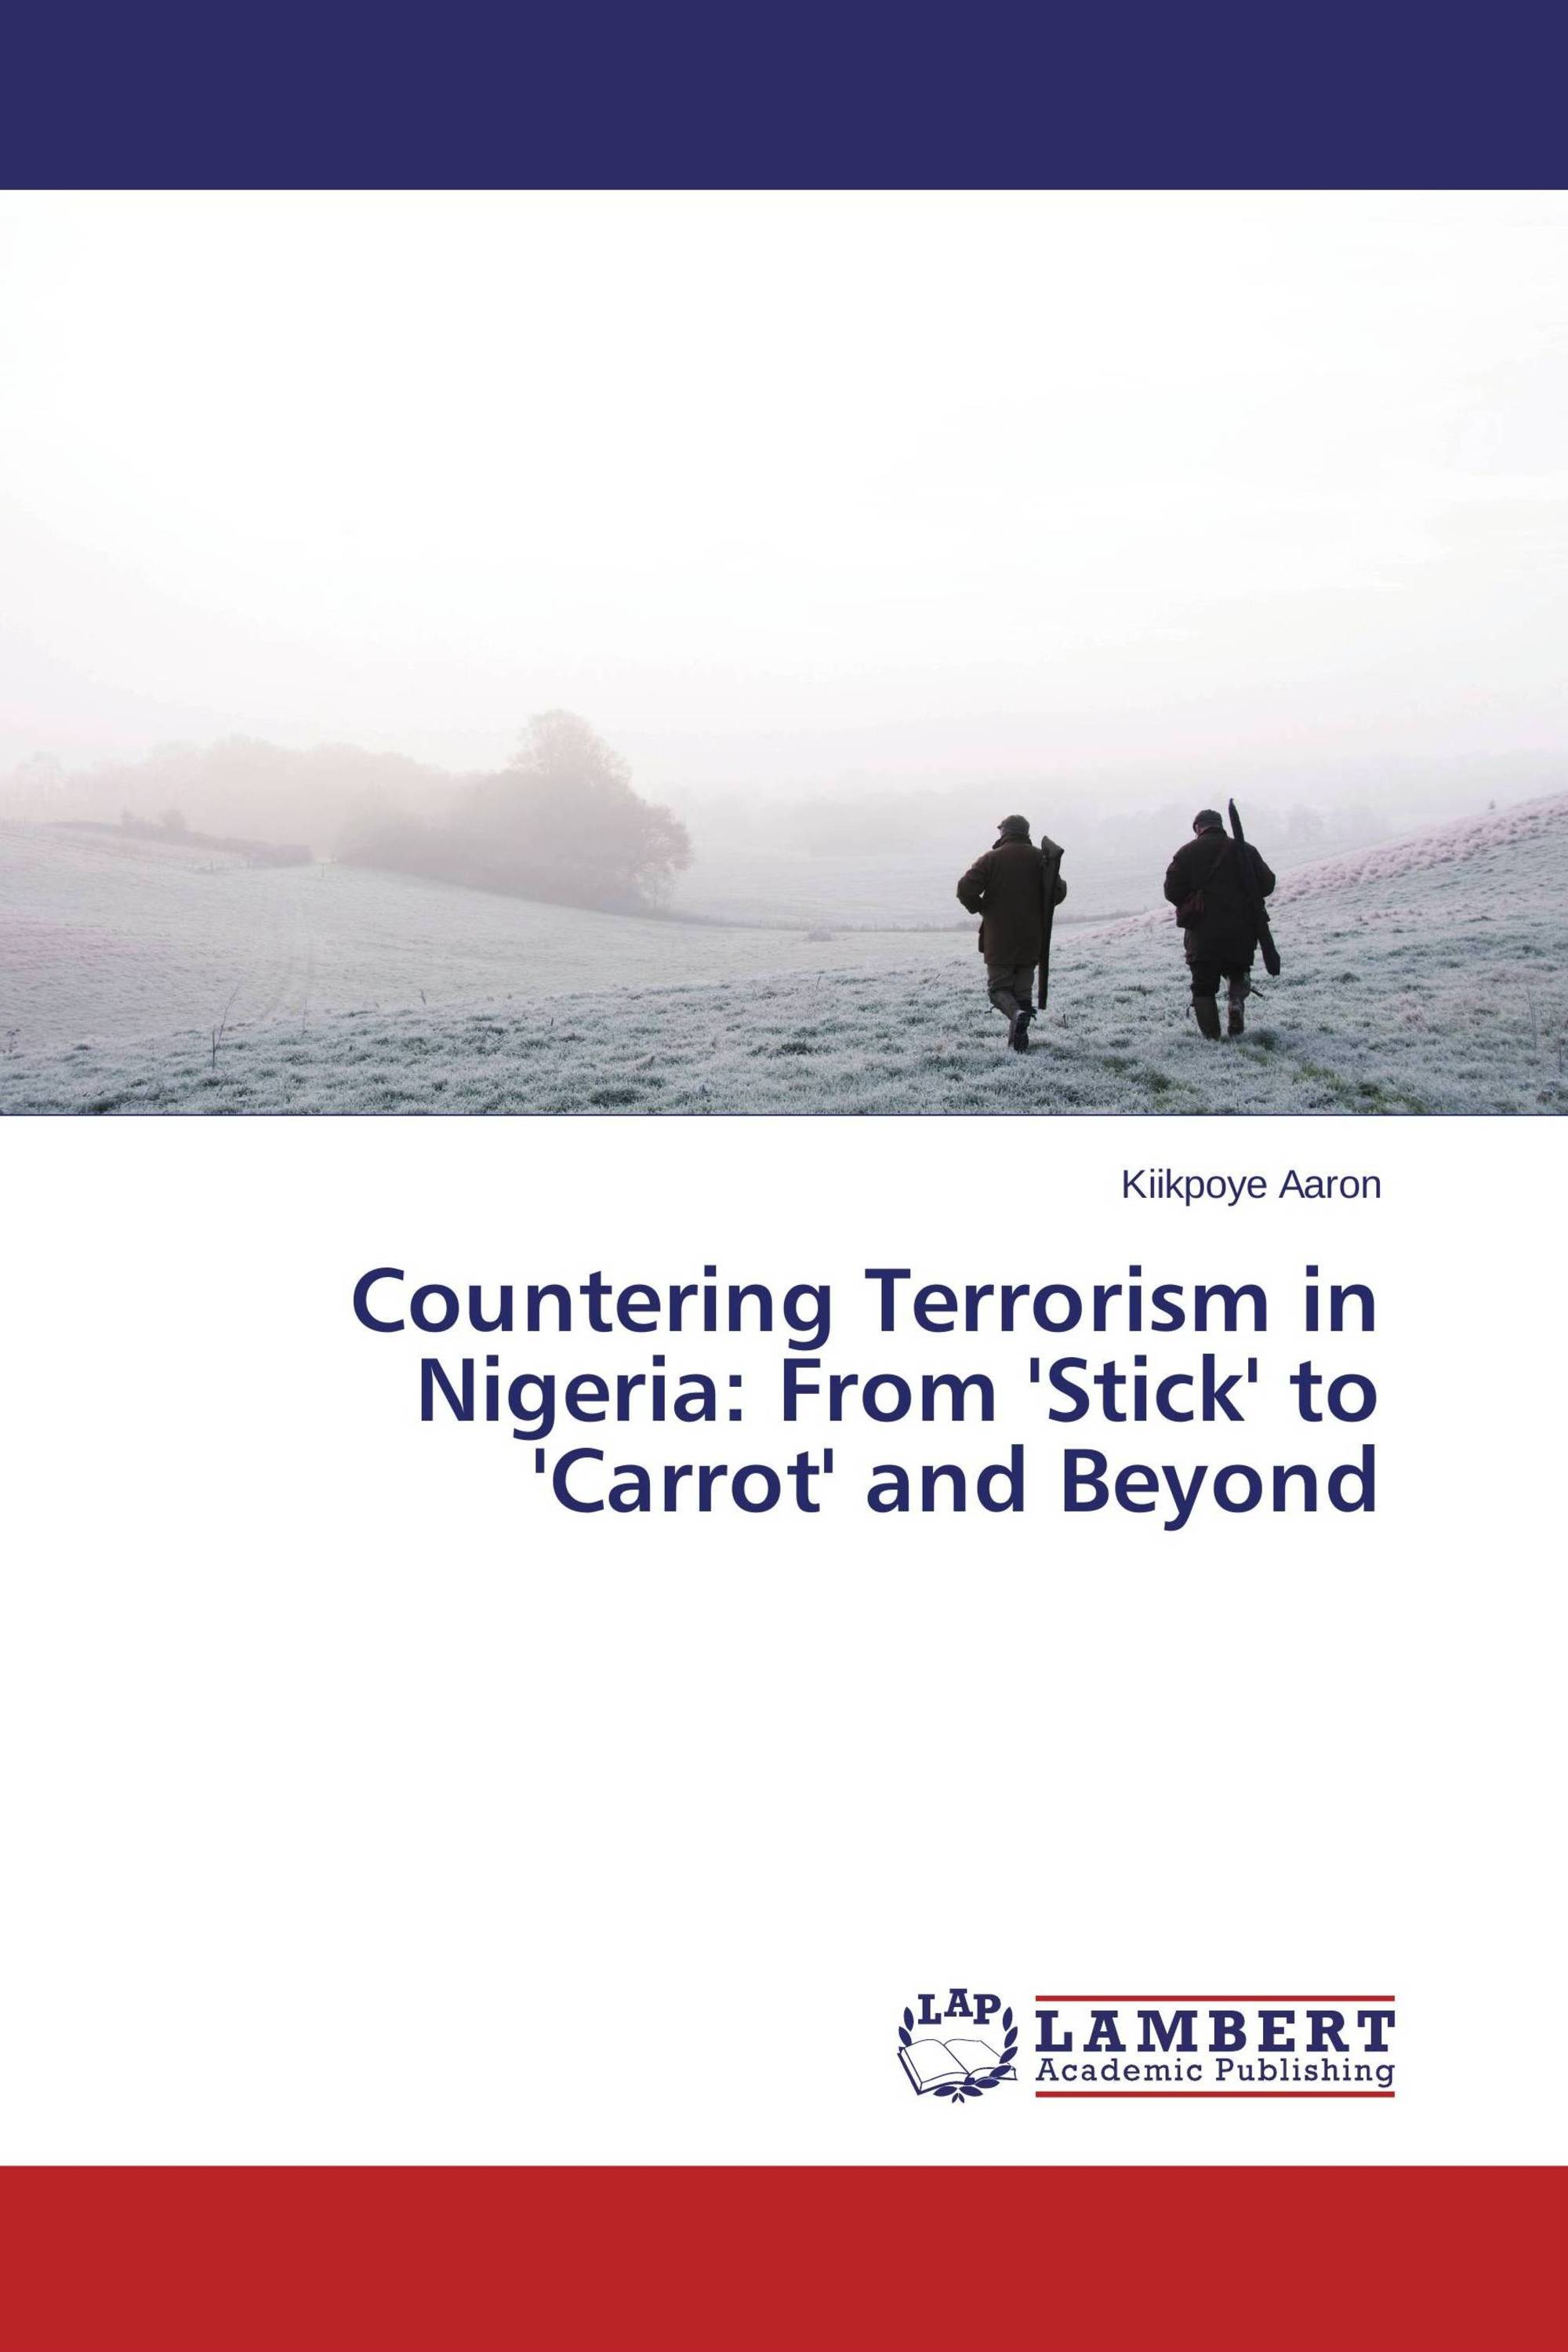 write an essay on terrorism in nigeria Title: us homeland defence terrorism by its very nature disrupts international peace and security through premeditated, political violence the 11 th september attacks on the world trade center and the pentagon disrupted the global economy.